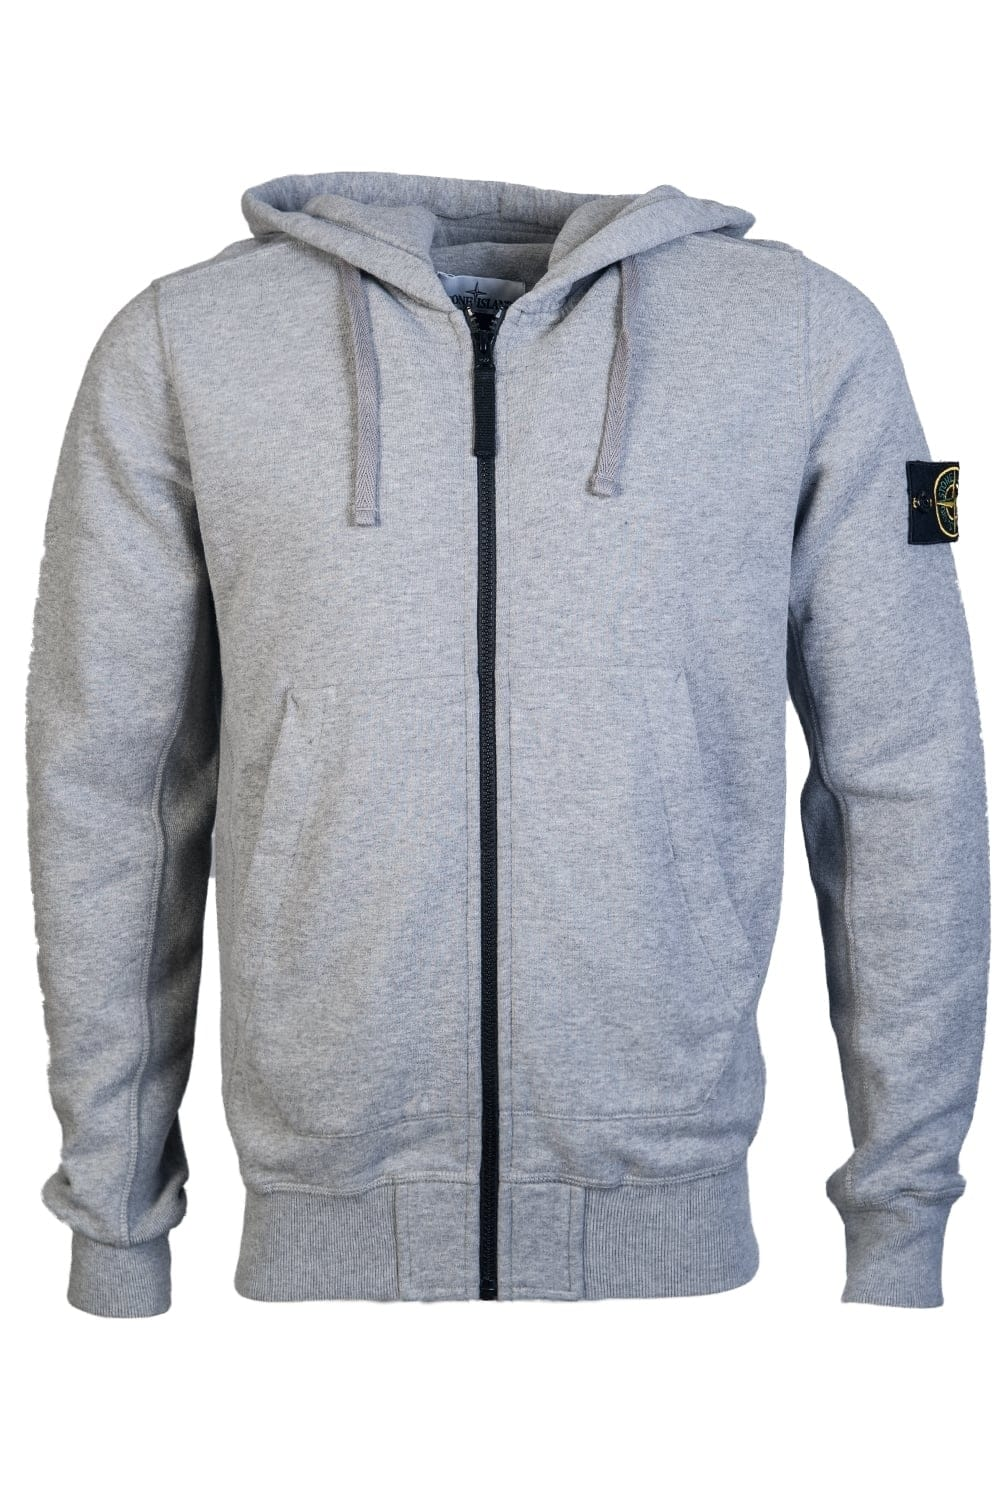 stone island sweatshirt jumper 651560620 clothing from. Black Bedroom Furniture Sets. Home Design Ideas